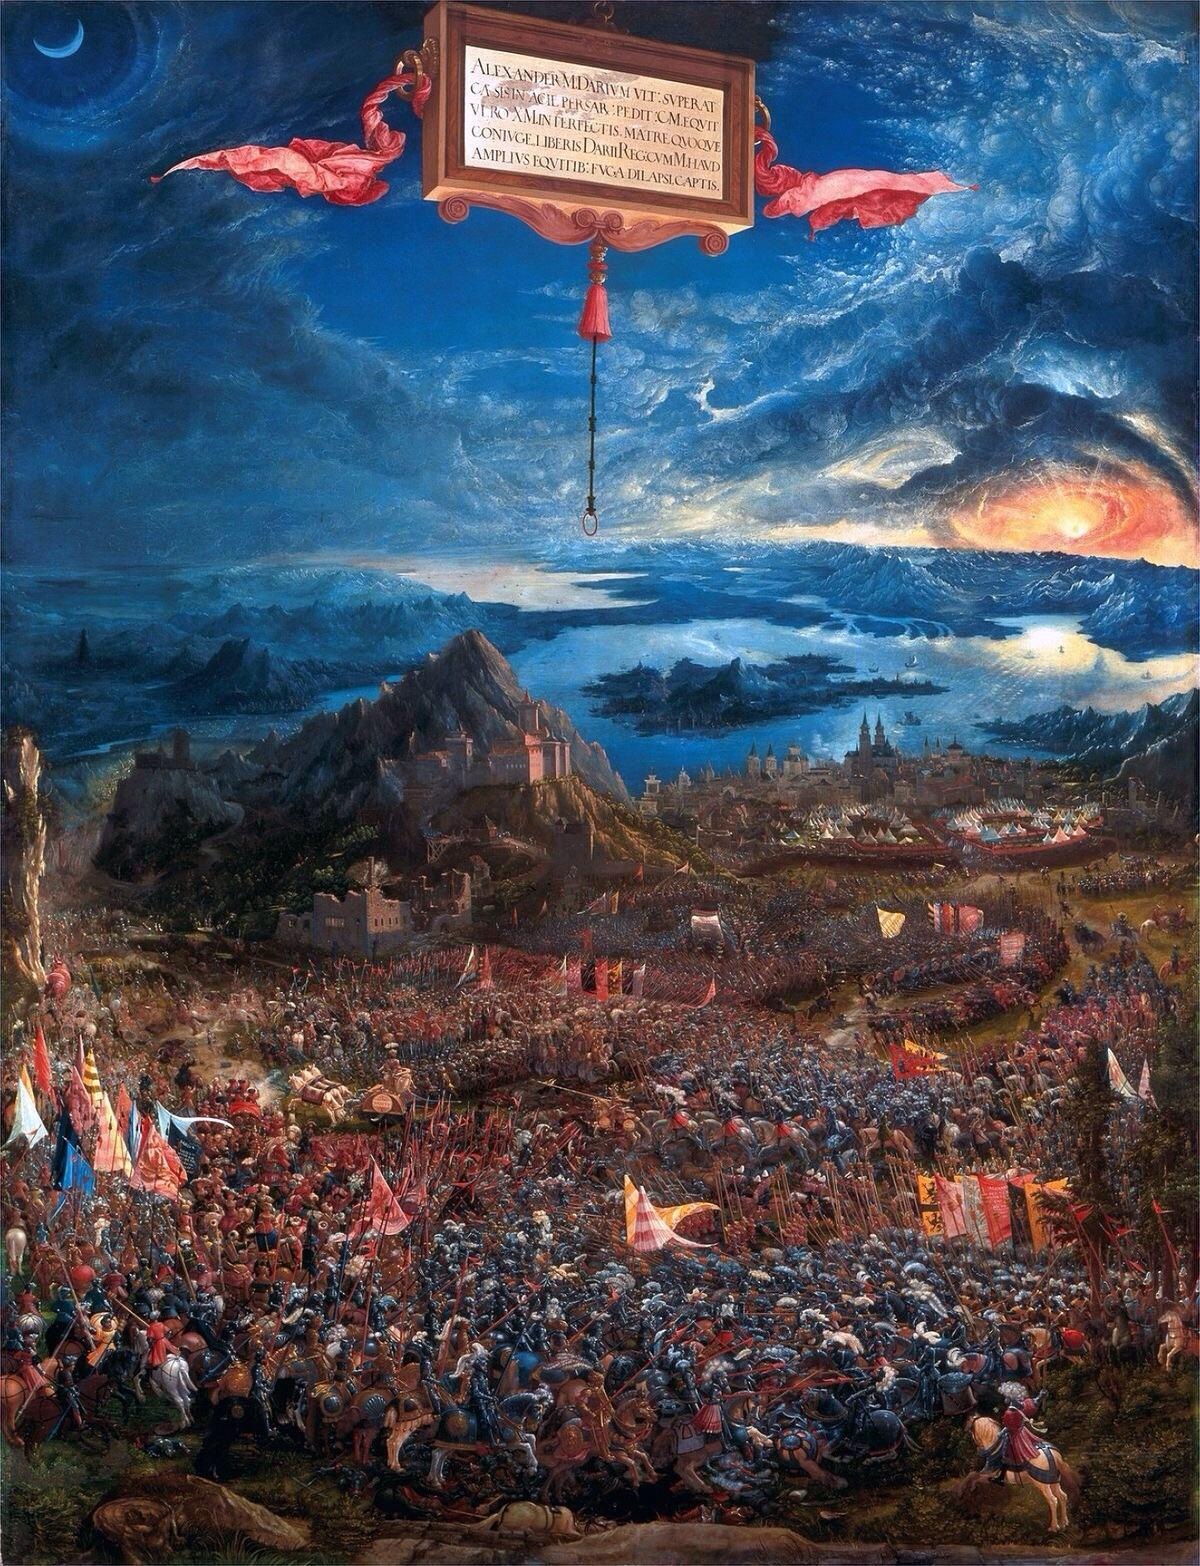 The Battle of Alexander at Issus by Albrecht Altdorfer, 1529